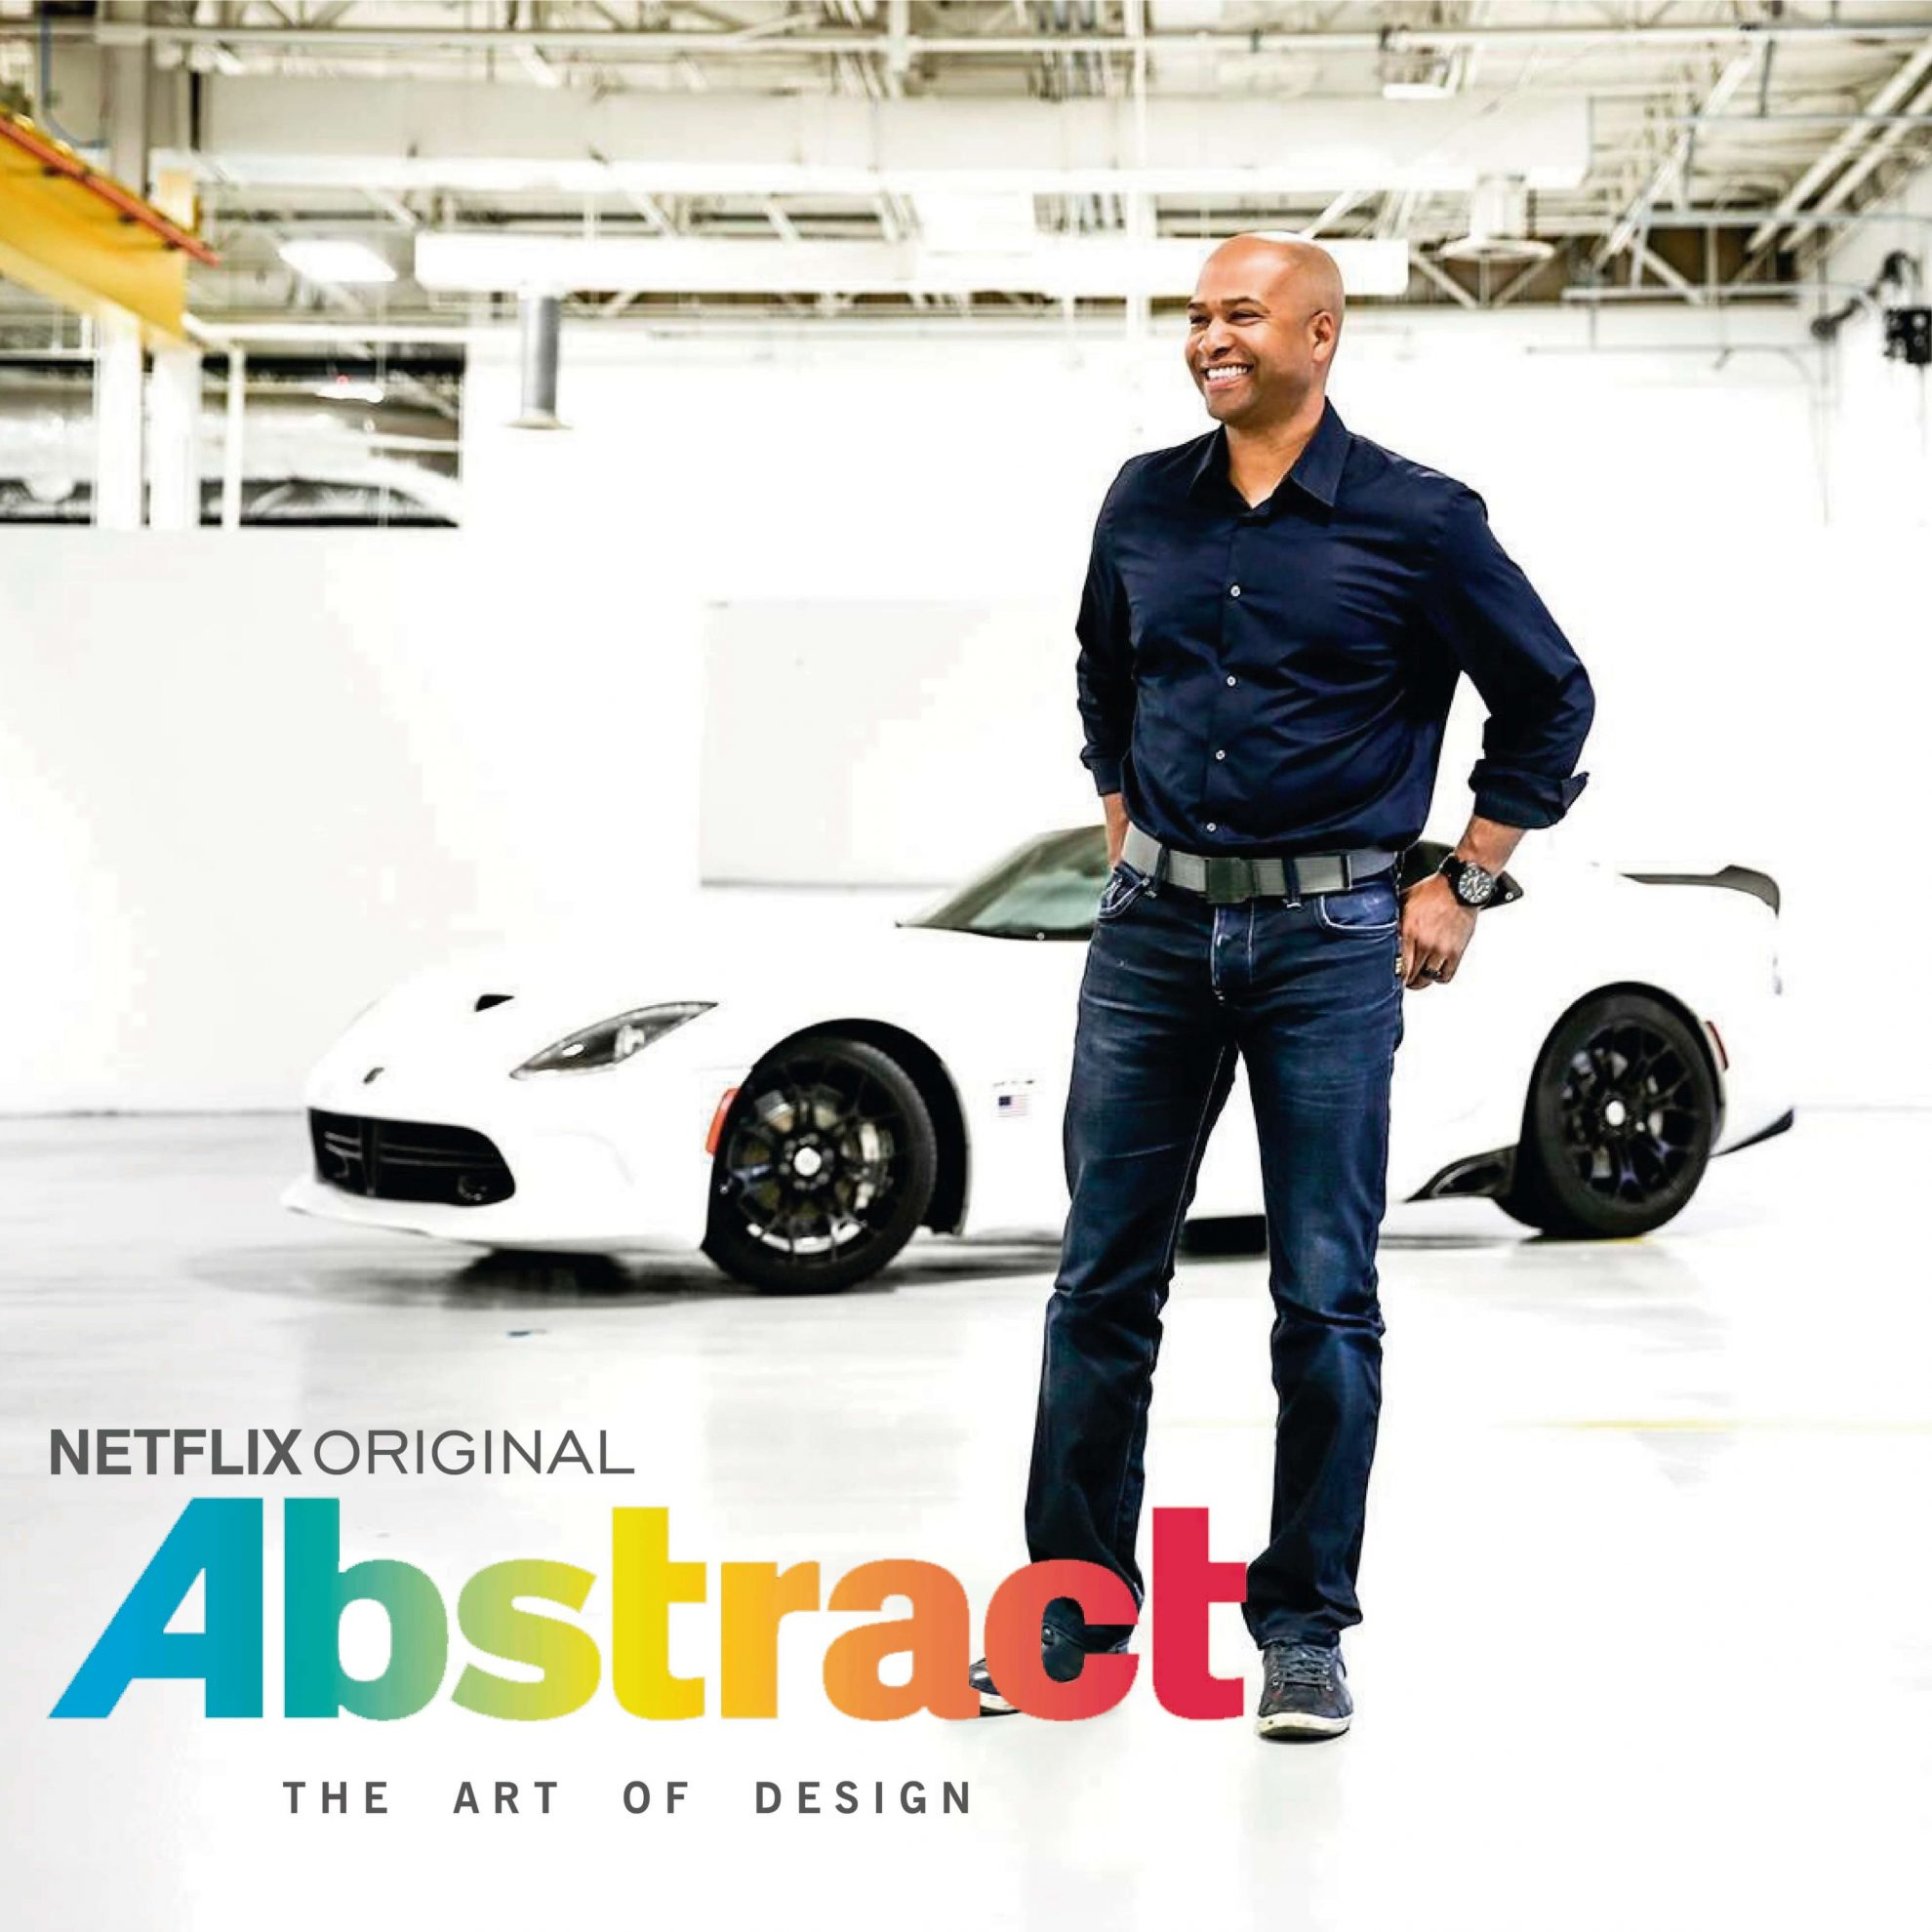 Abstract The Art of Design por Netflix o designer automotivo Ralph Gilles